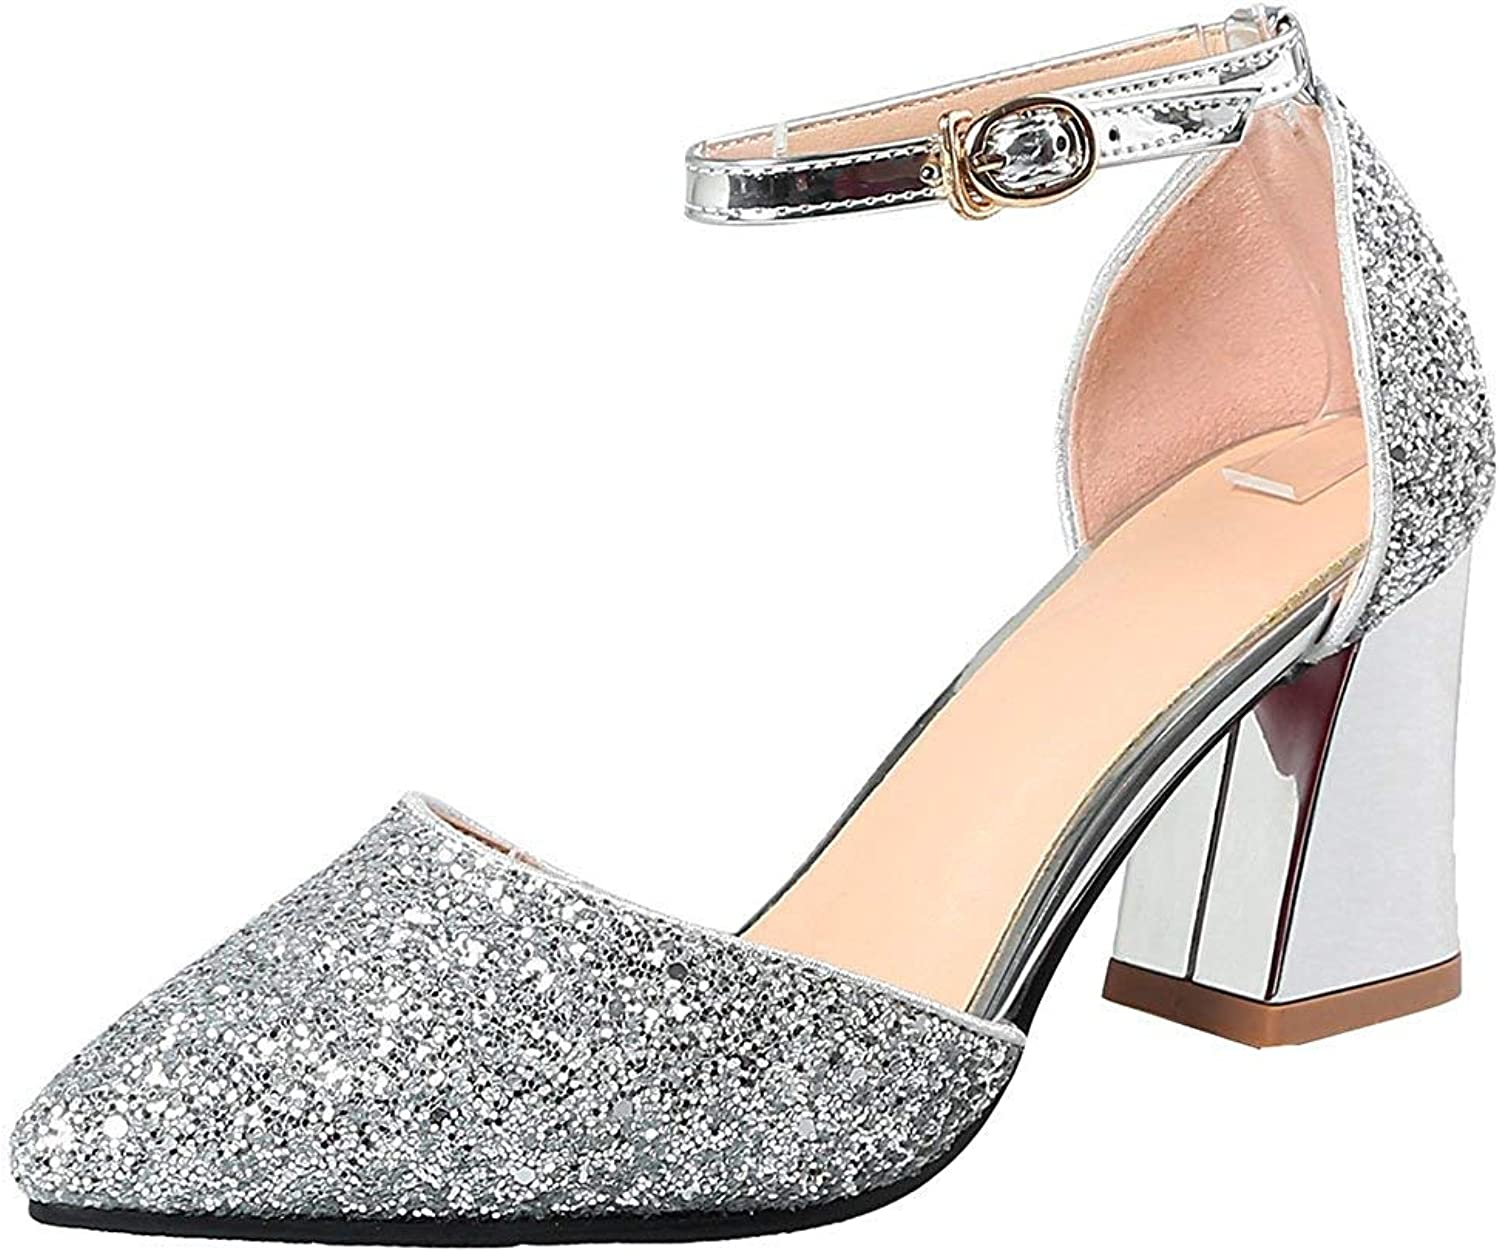 Gcanwea Women's Fashion Sequins Ankle Strap Sandals - Glitter Pointed Toe Cut Out - Buckle Block Medium Heels Bridal shoes Silver 4.5 M US